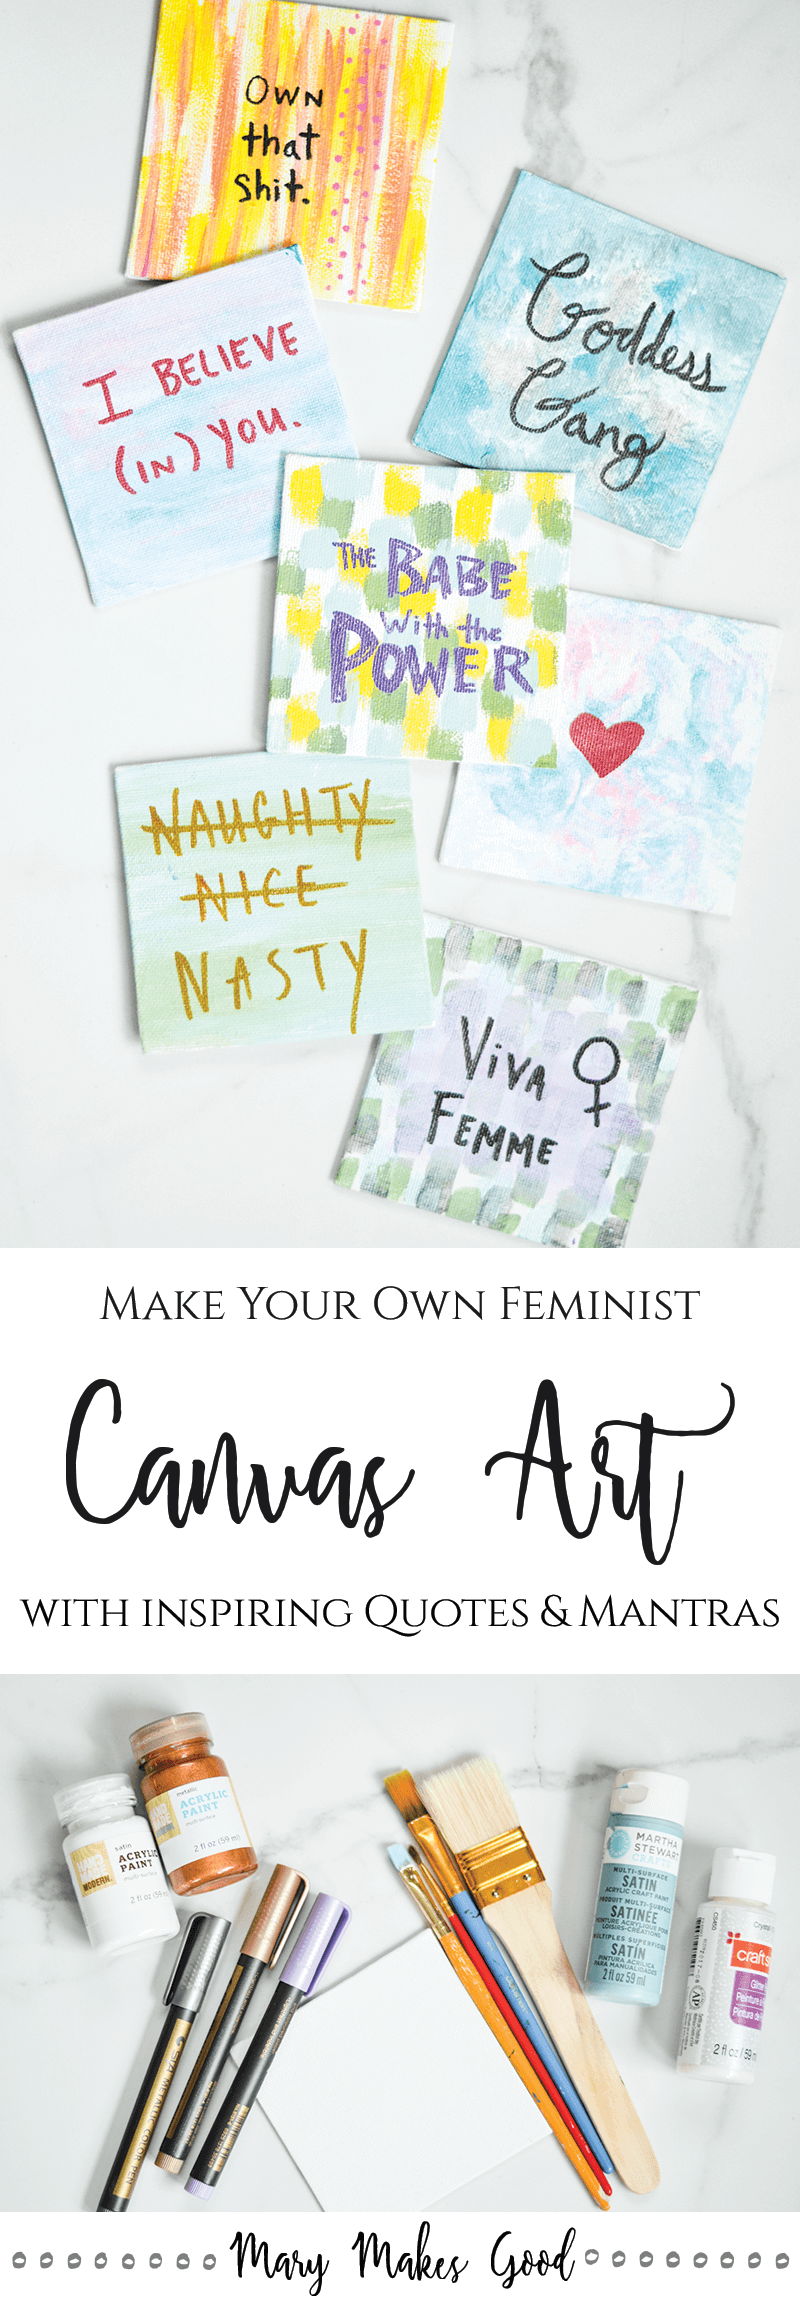 Make Your Own Feminist Canvas Art Using Inspirational Quotes & Mantras - a Great Project for Craft Nights and Art Hangouts